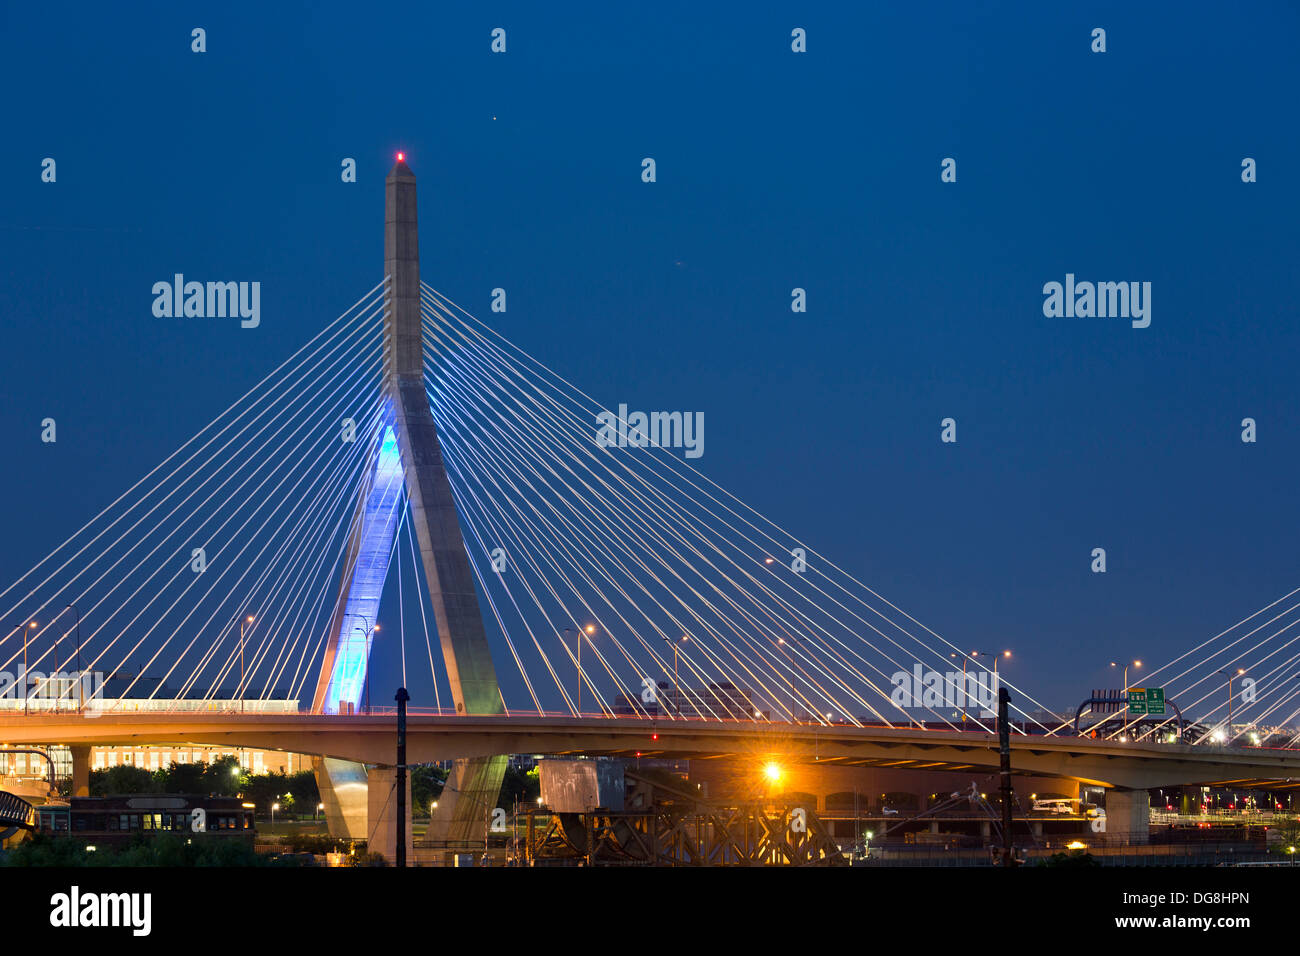 Leonard P. Zakim Bunker Hill/Memorial Bridge (pont Zakim), Boston, Massachusetts, USA Photo Stock